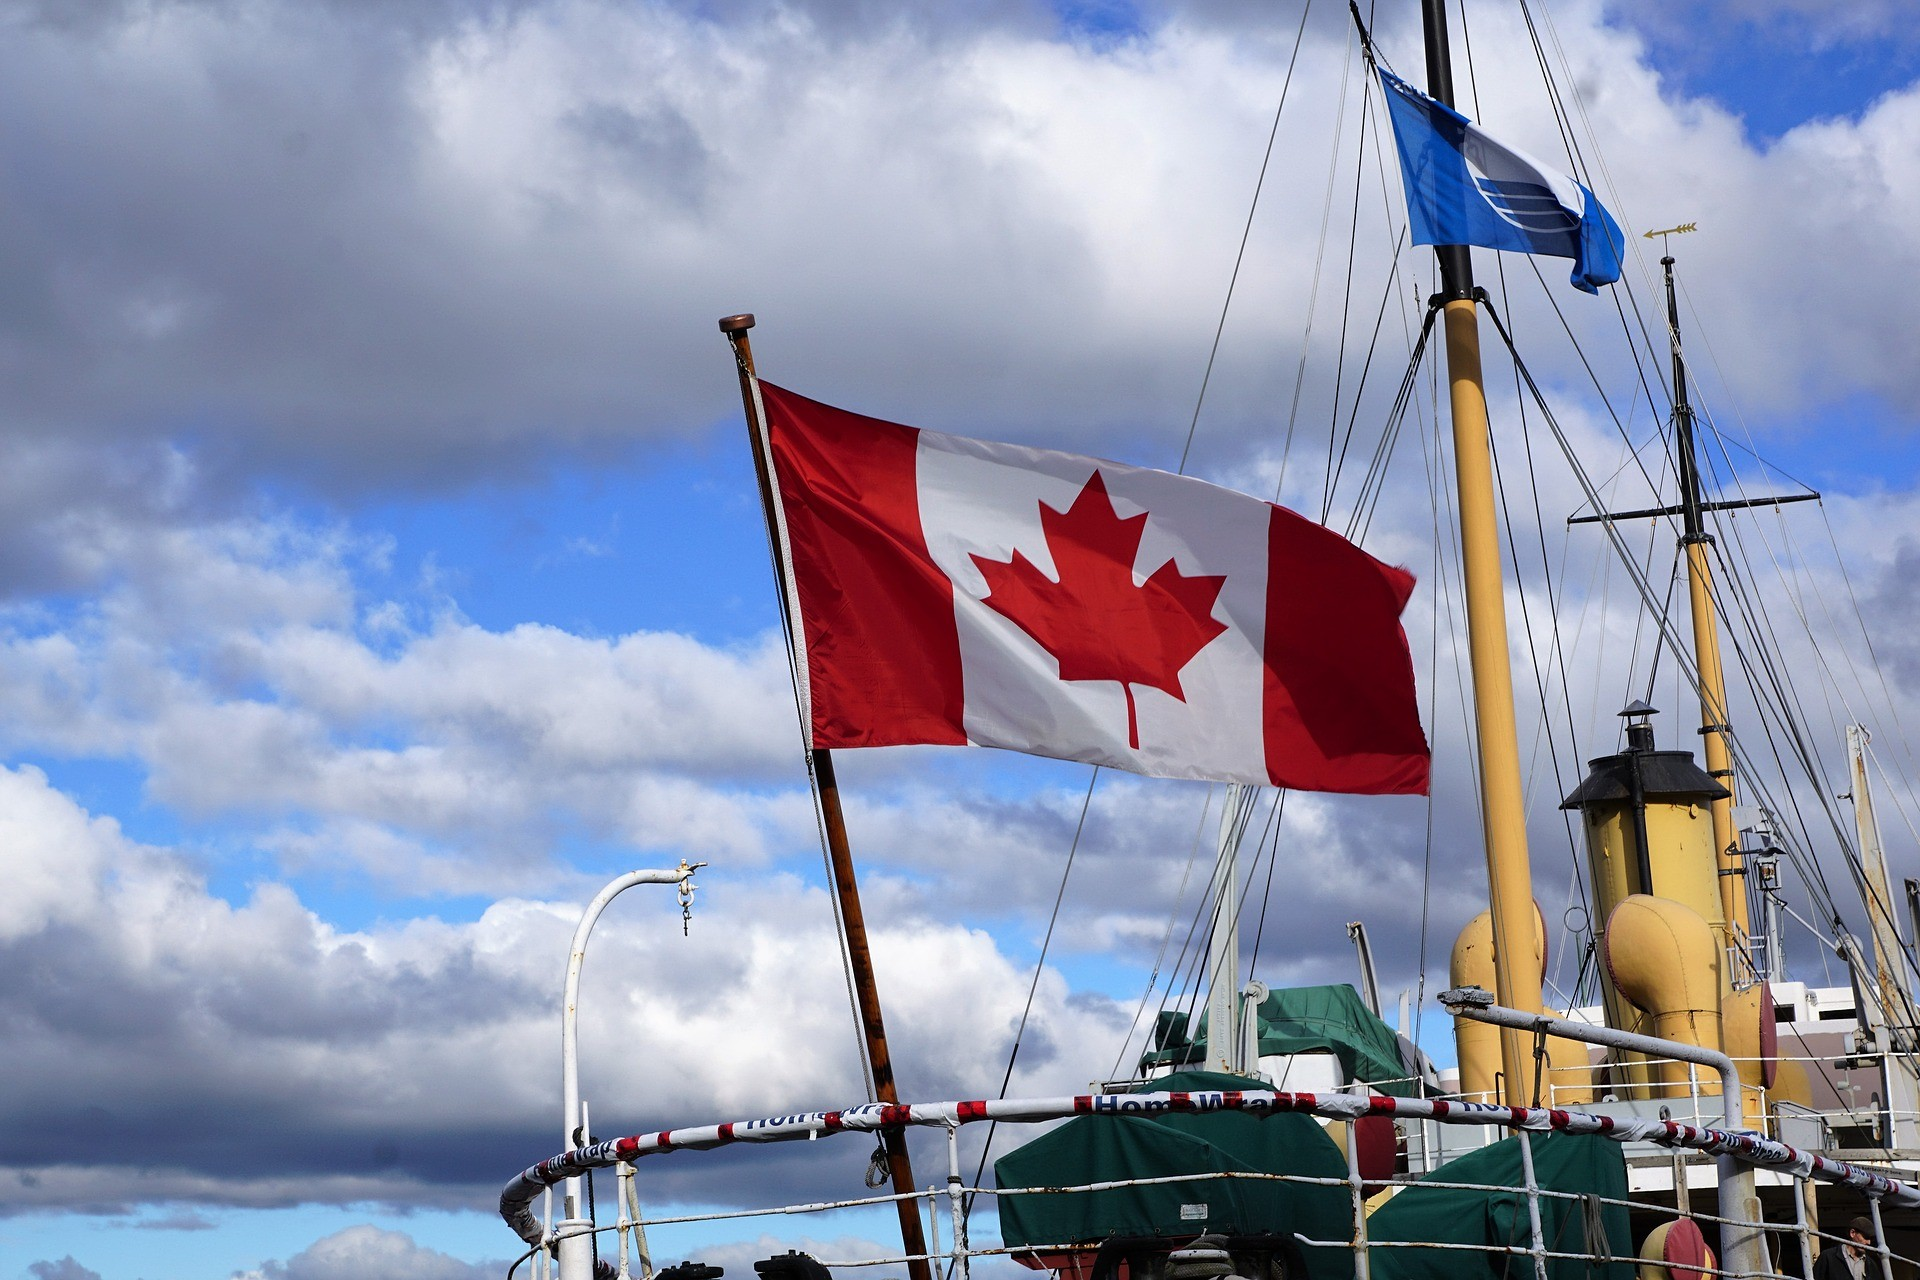 Save on travel this fall. Canadian flag flies in Halifax.